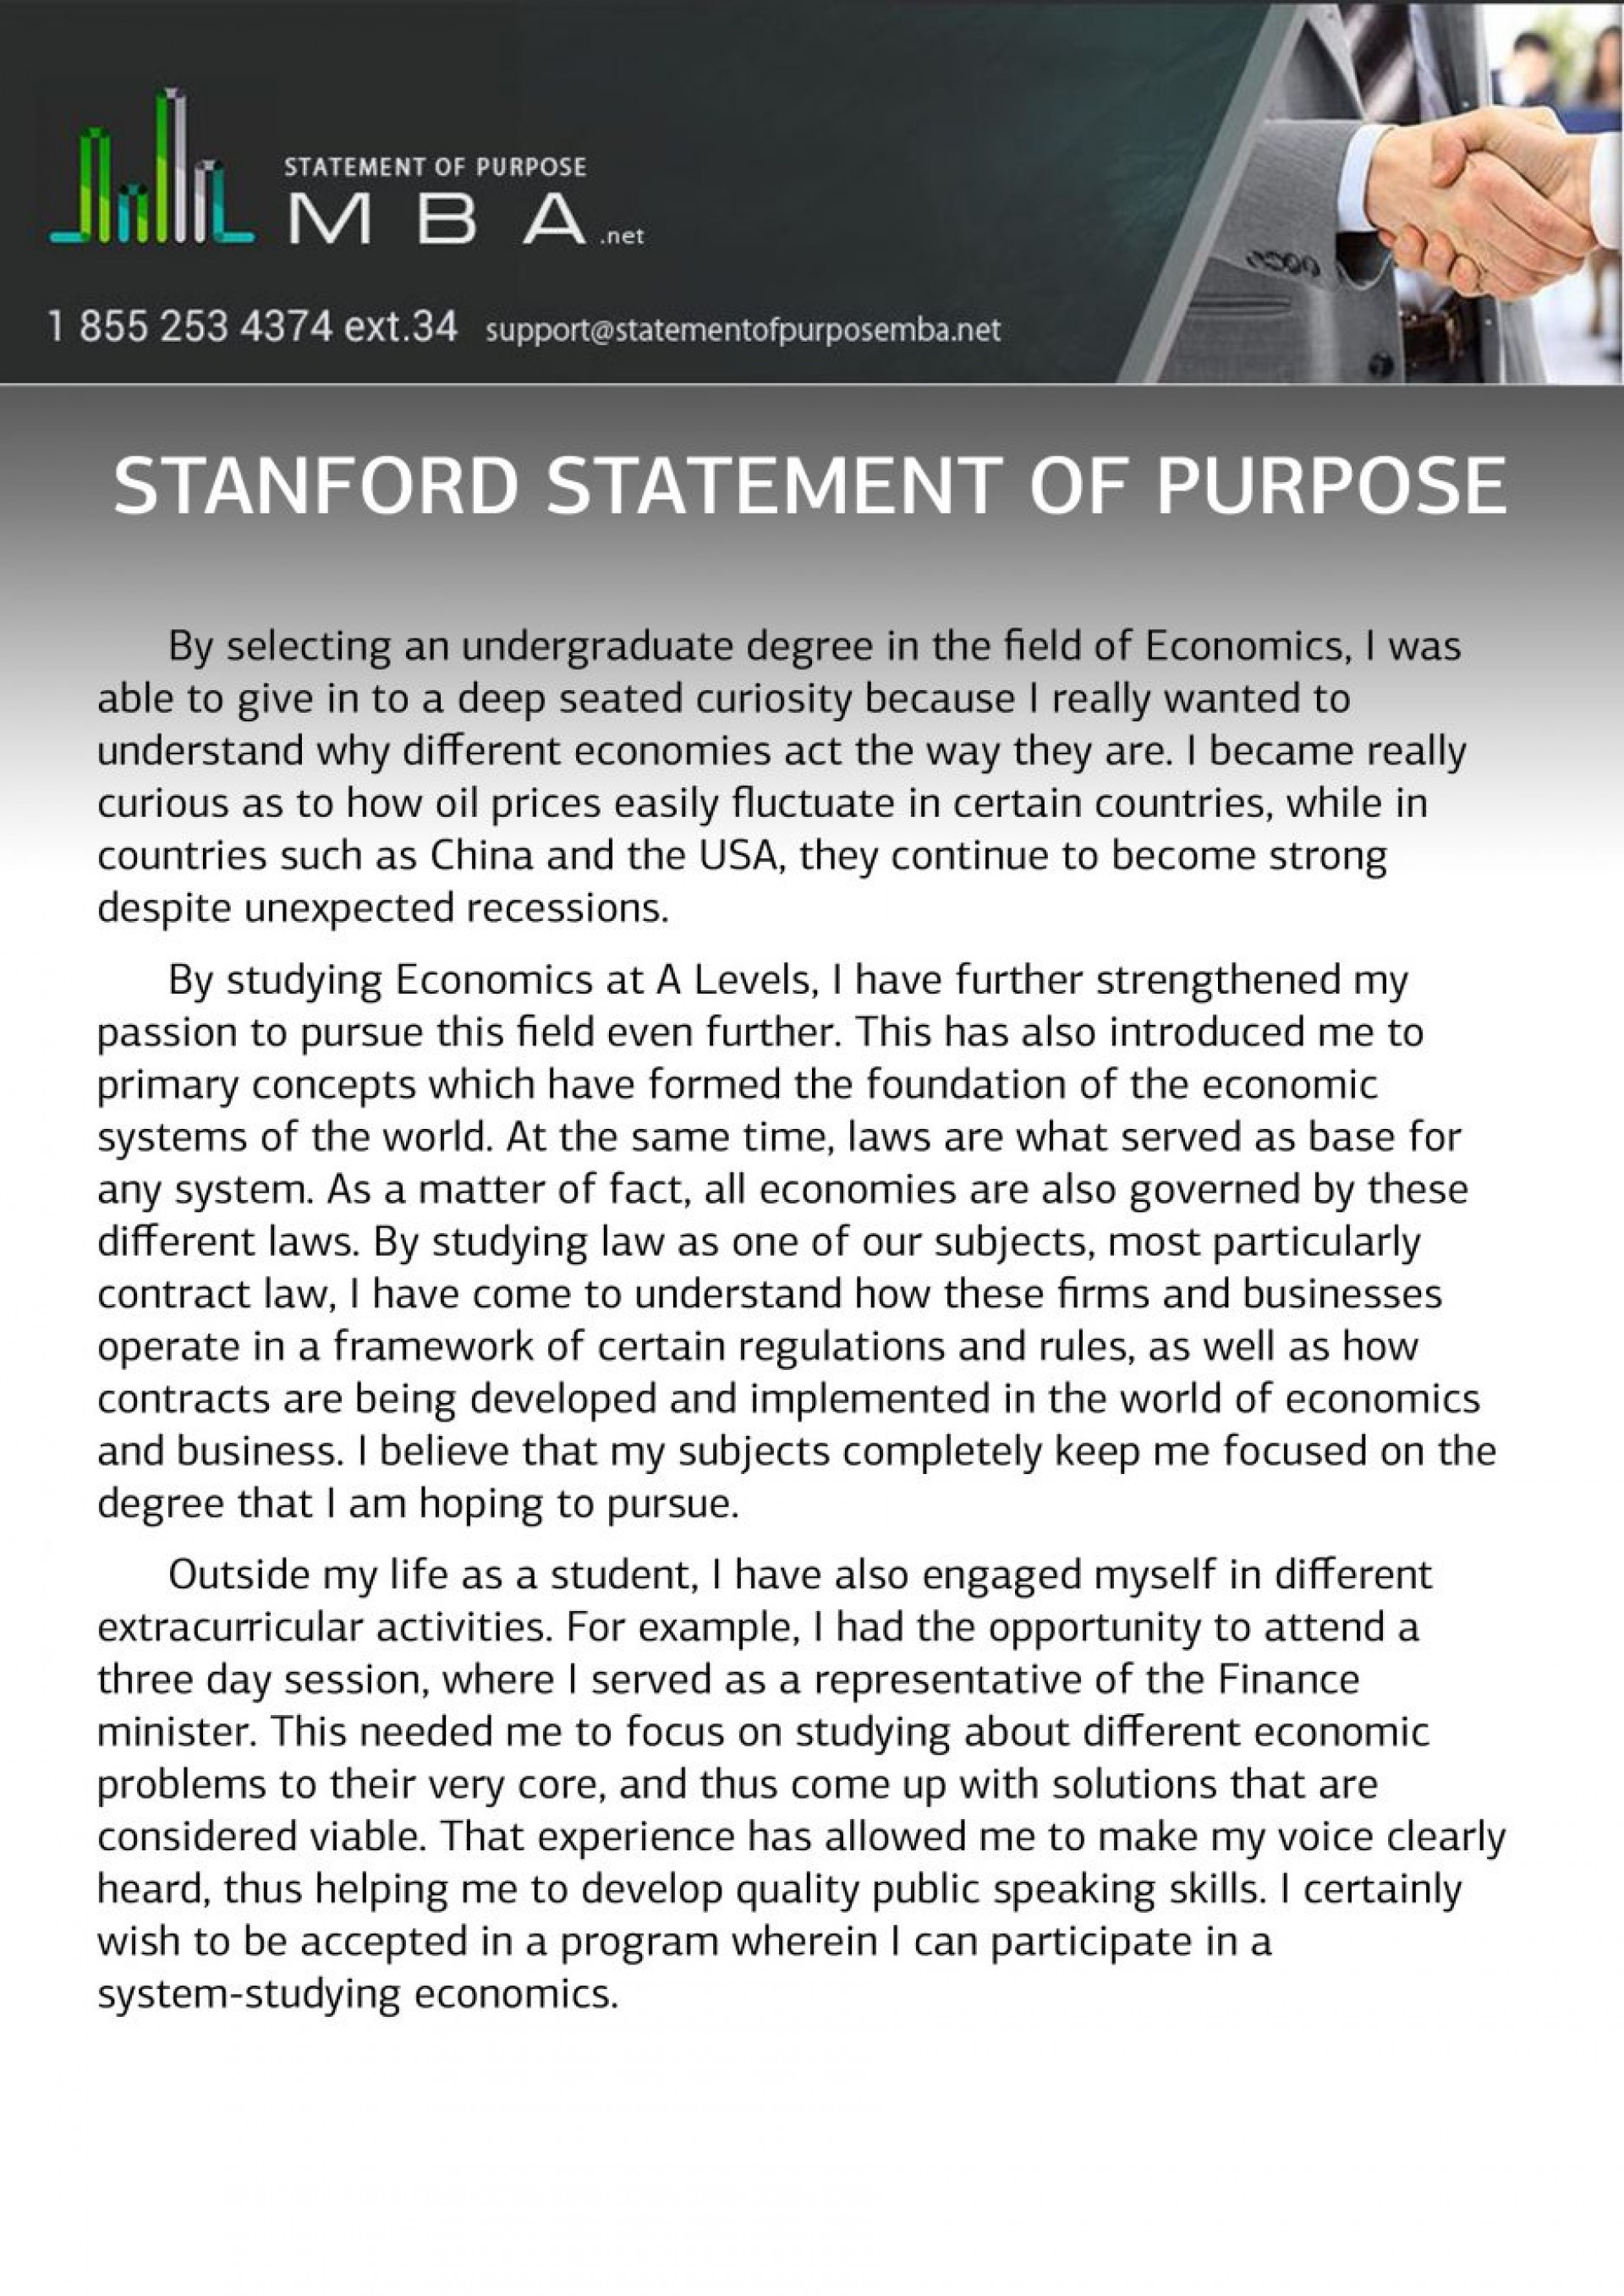 011 Stanford Essays Roommate Statement Purpose Sample Essay Accepted Examples That Worked Tips Example Prompt College Confidential Of Advice Reddit Facebook Stunning Ocean 1920